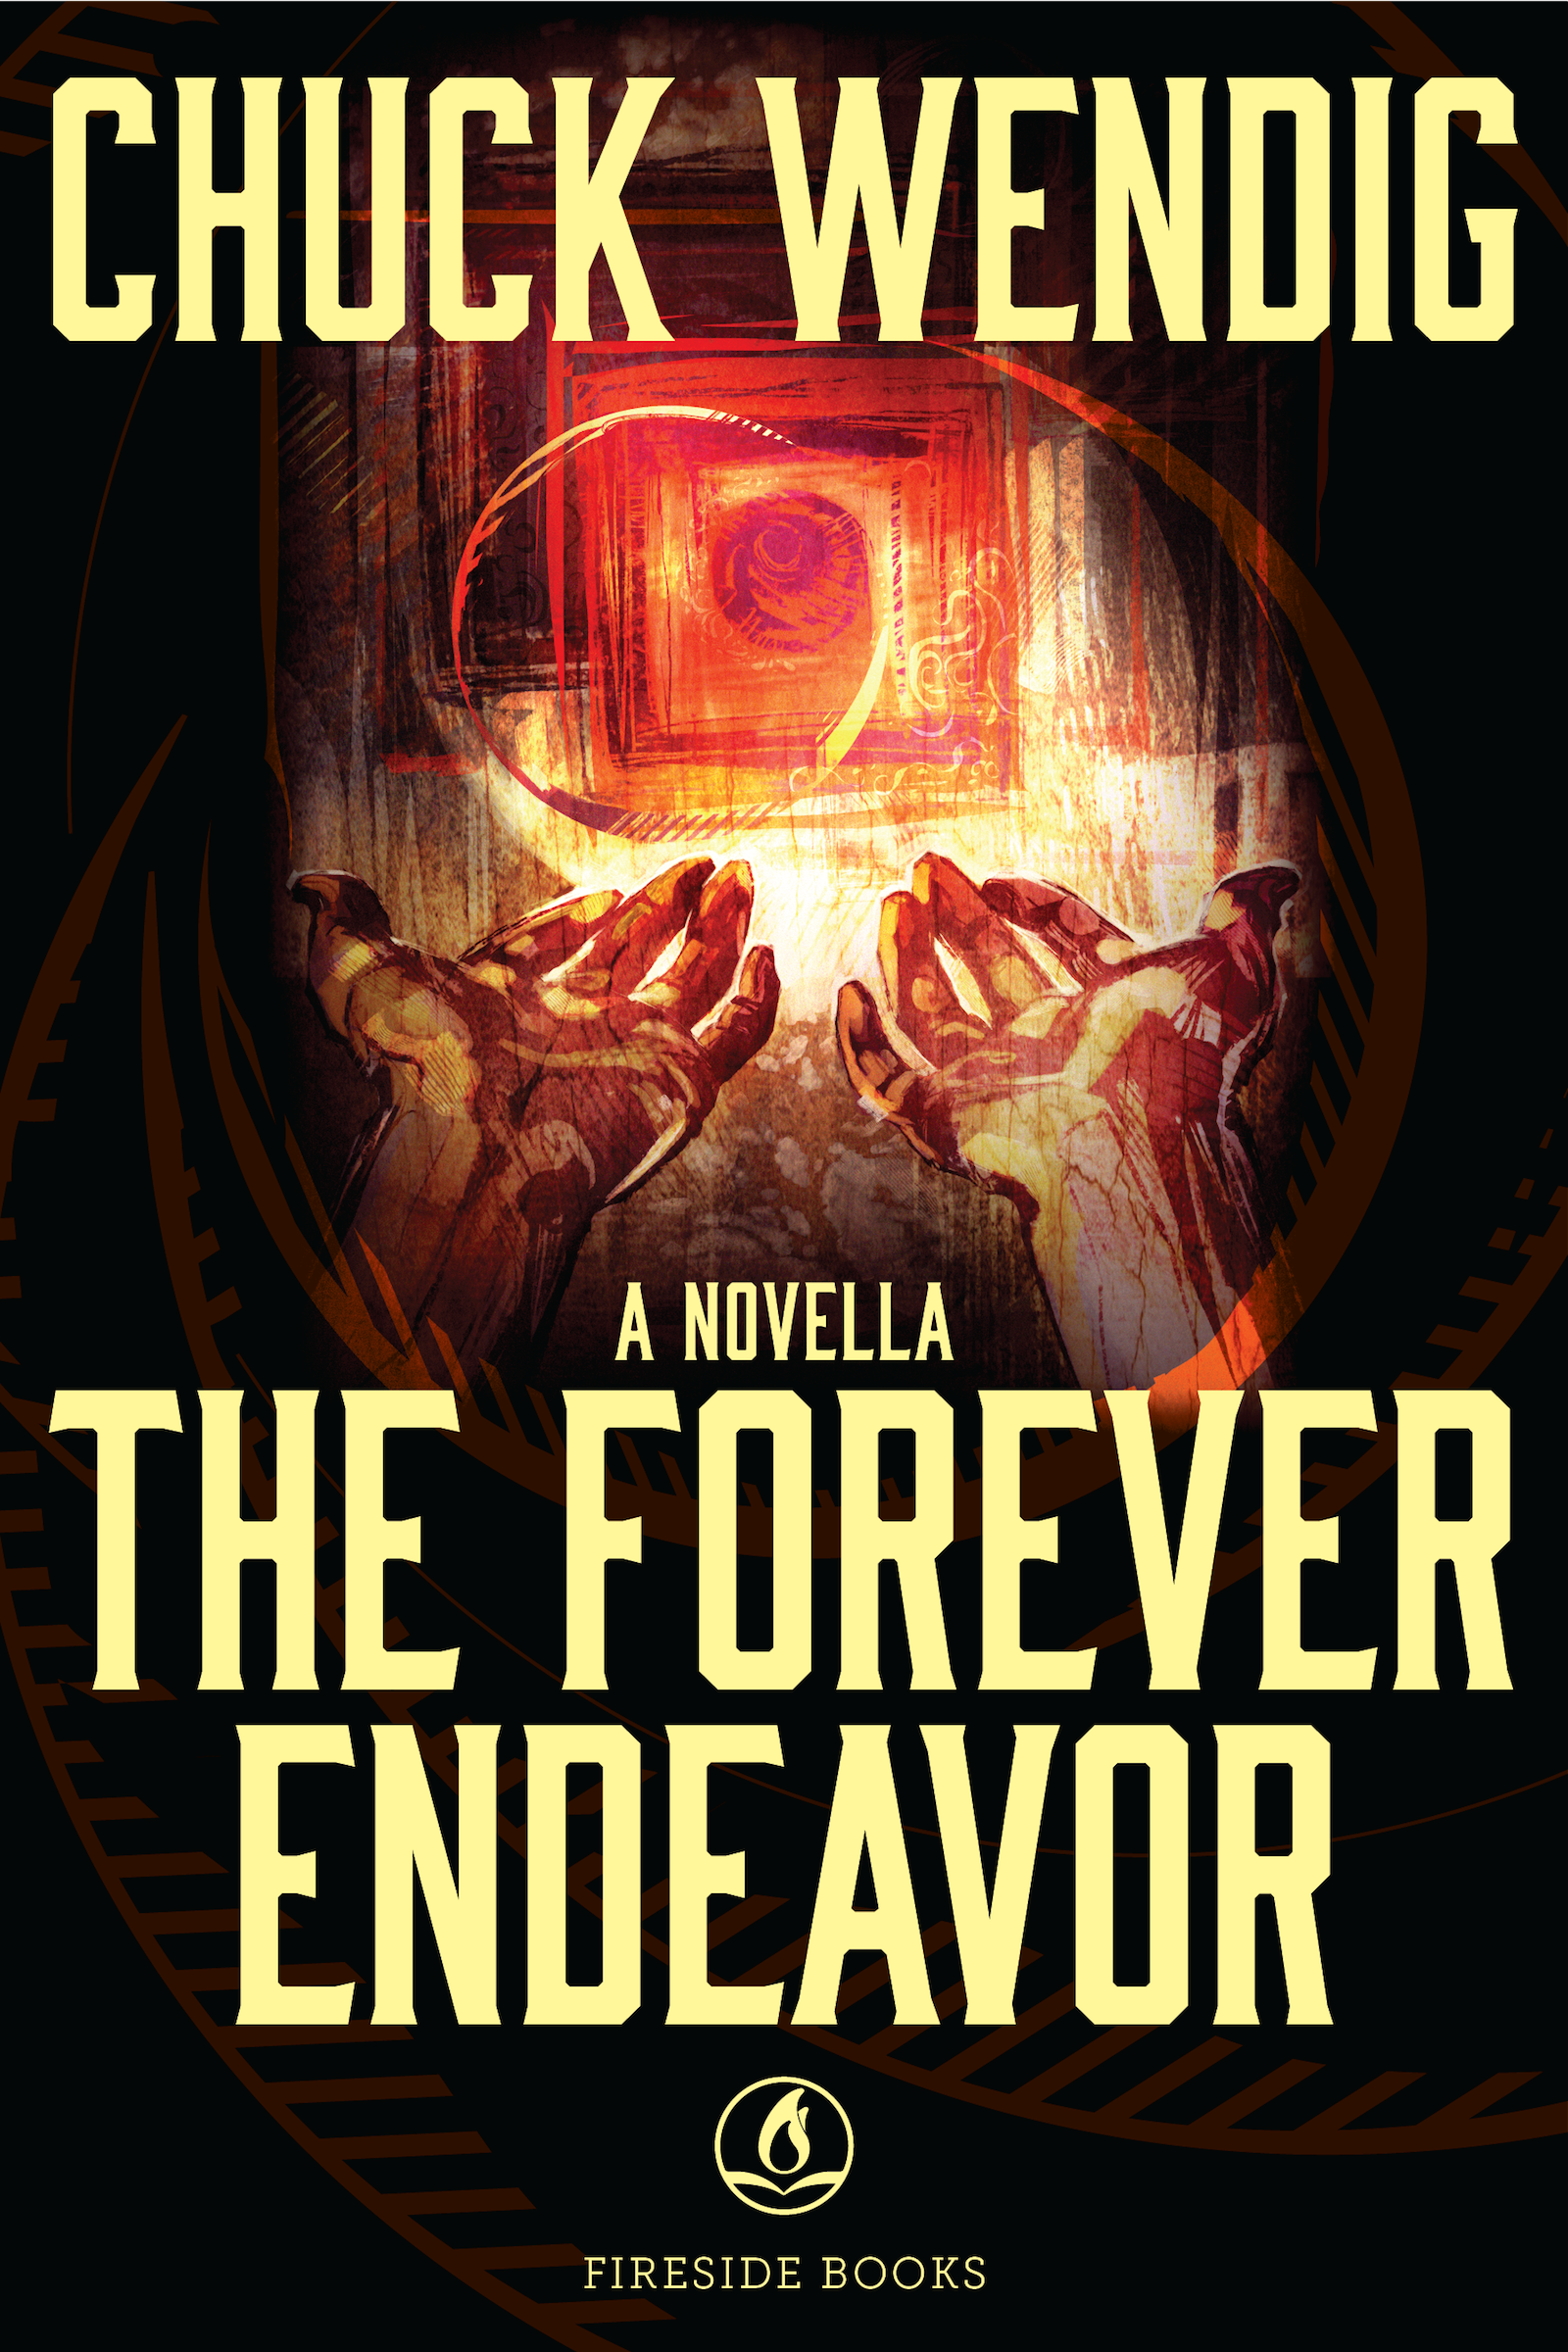 Cover image for The Forever Endeavor